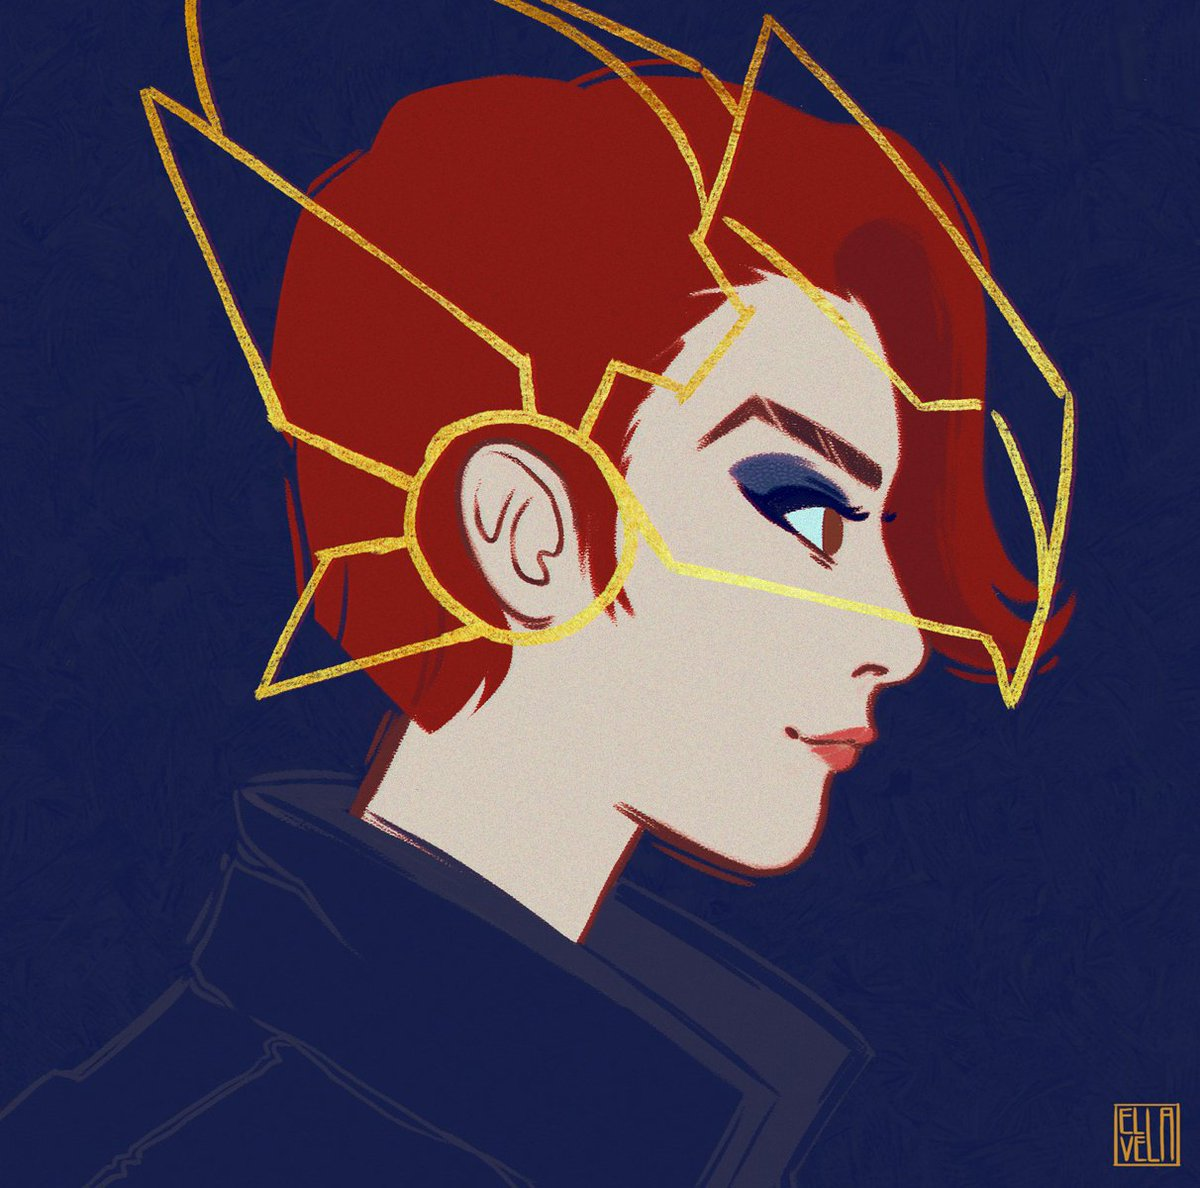 I don't know if you'll ever see this, but you're quite amazing, @FareehaAndersen   #fanart #DigitalArtist #Overwatch